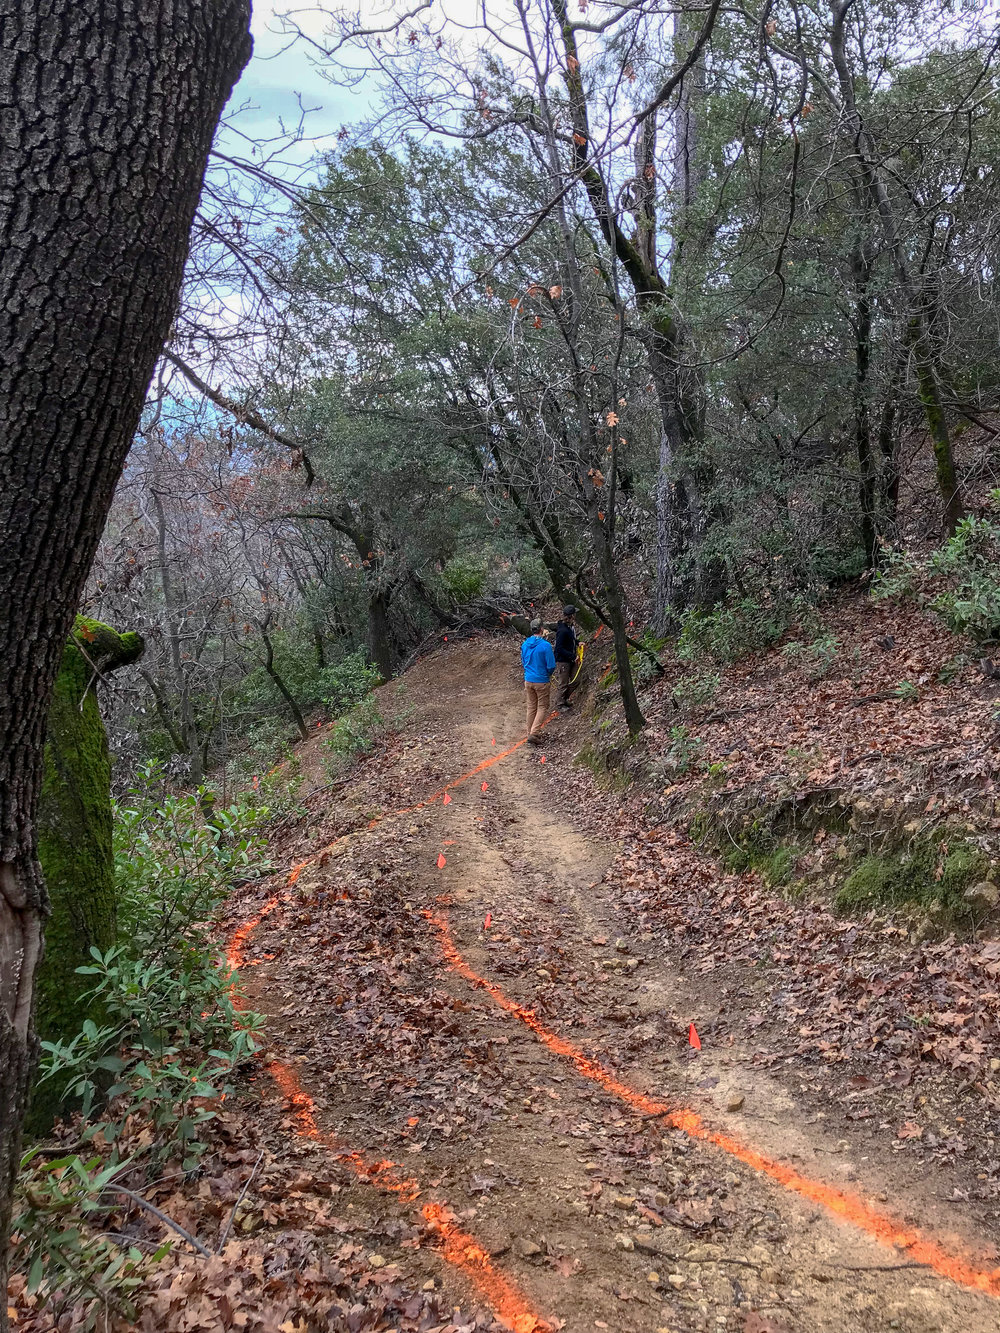 Re-routing the last steep switchback in the middle of the trail